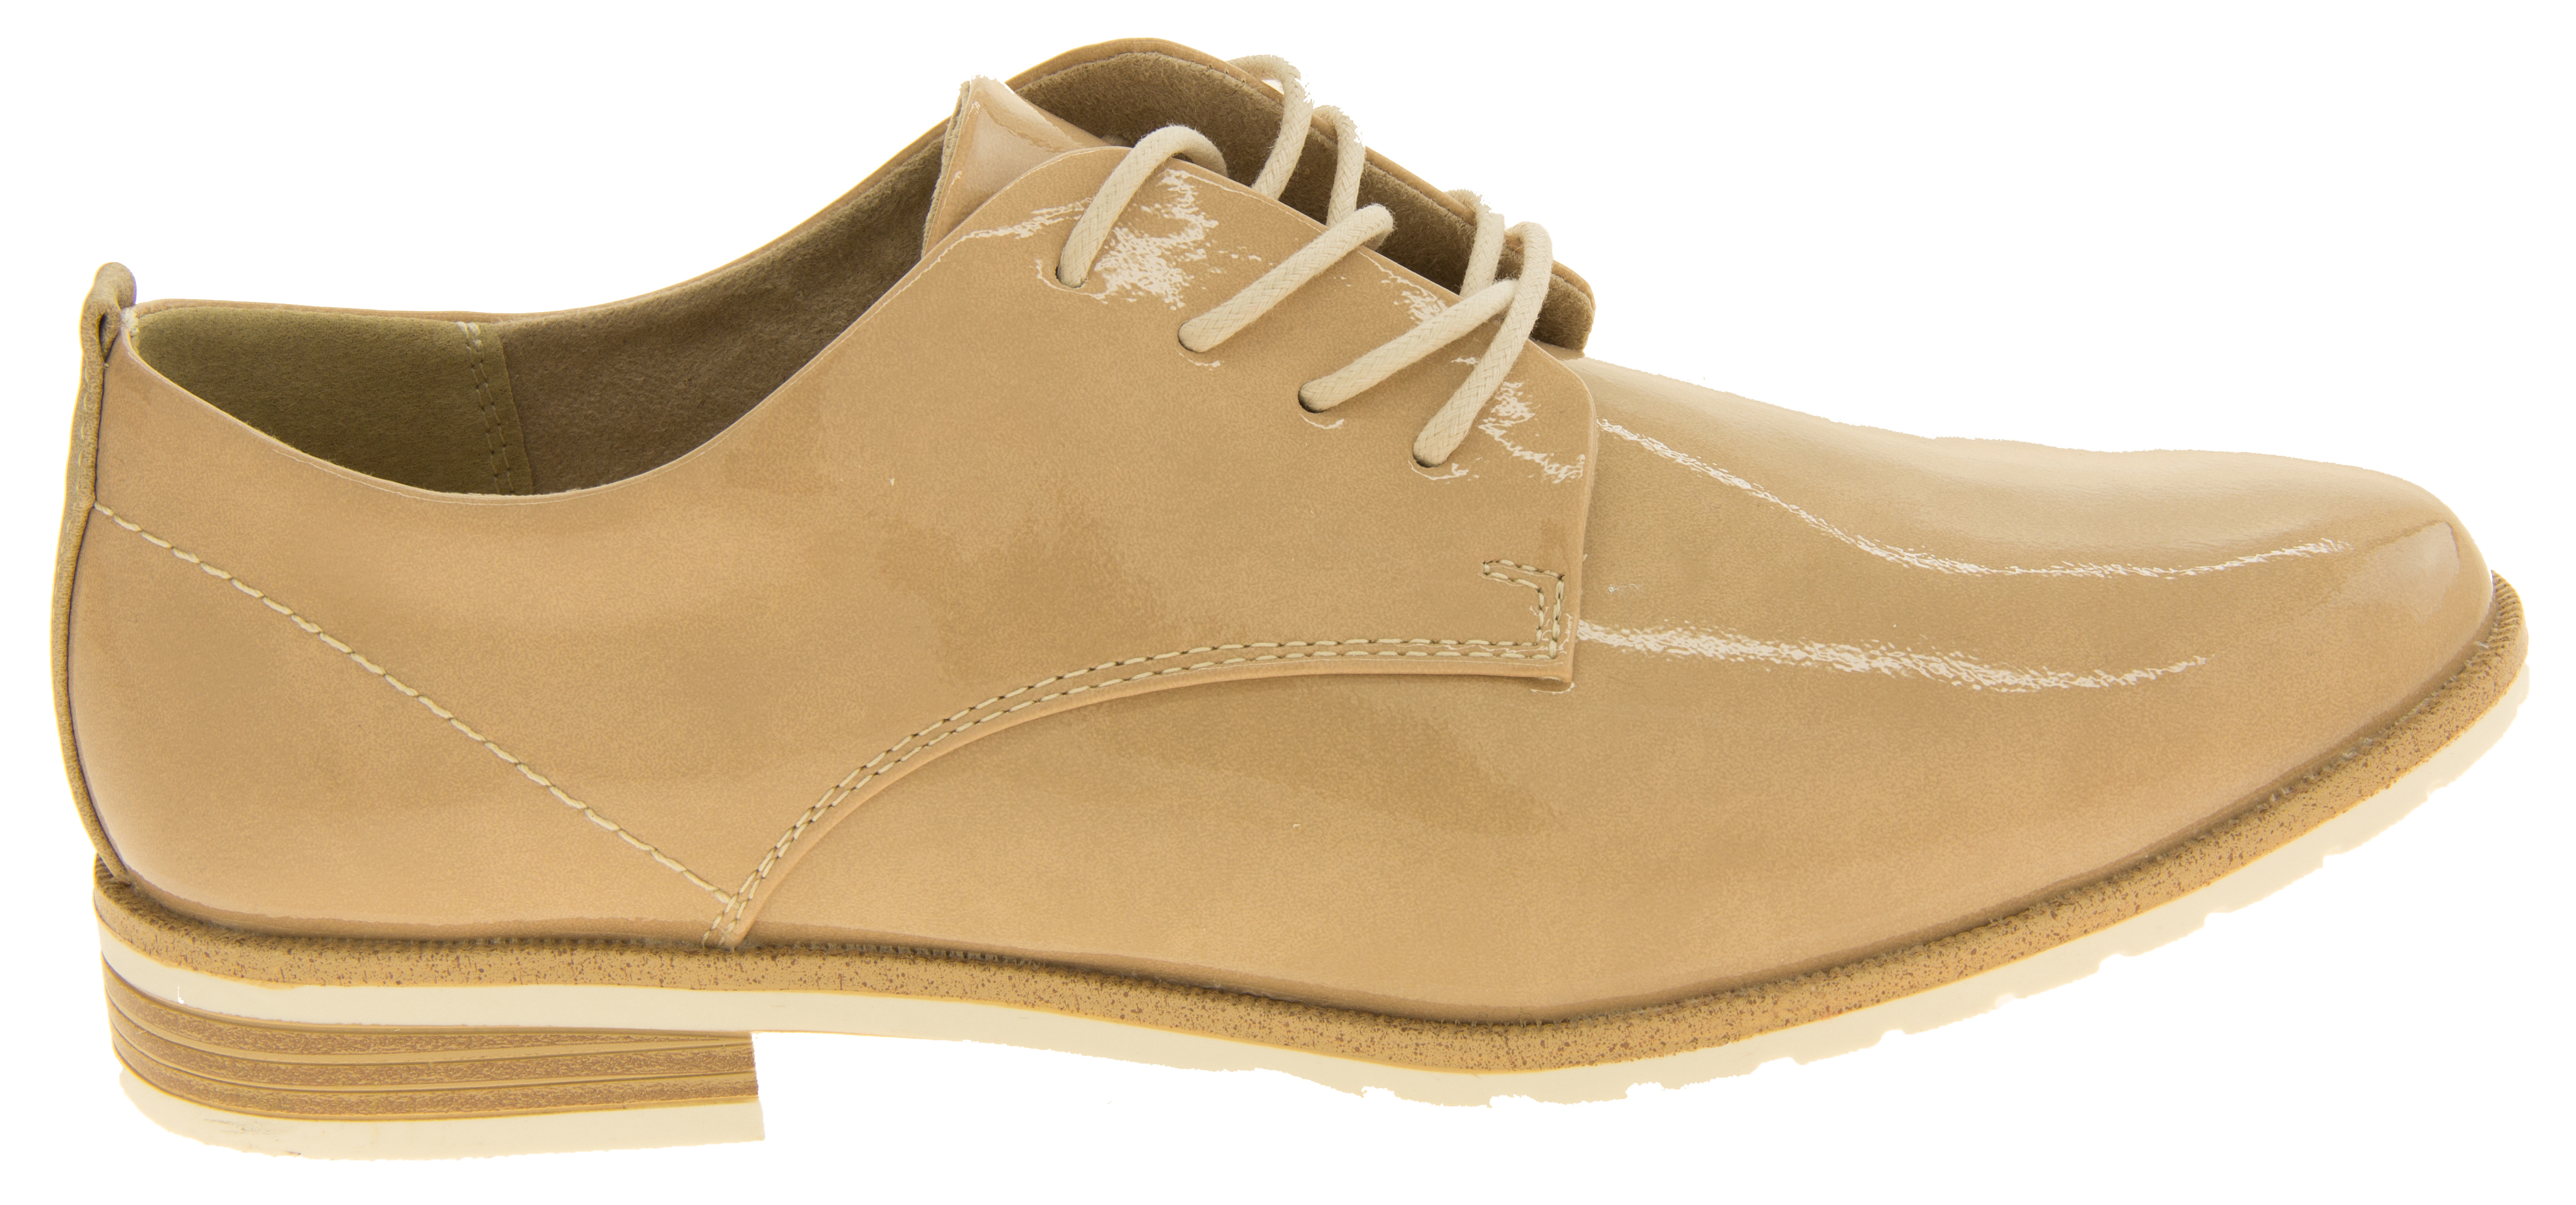 18bd10398eb2 Sentinel Ladies MARCO TOZZI Faux Leather Lace Up Summer Brogue Shoes Sizes  6 7 8 9